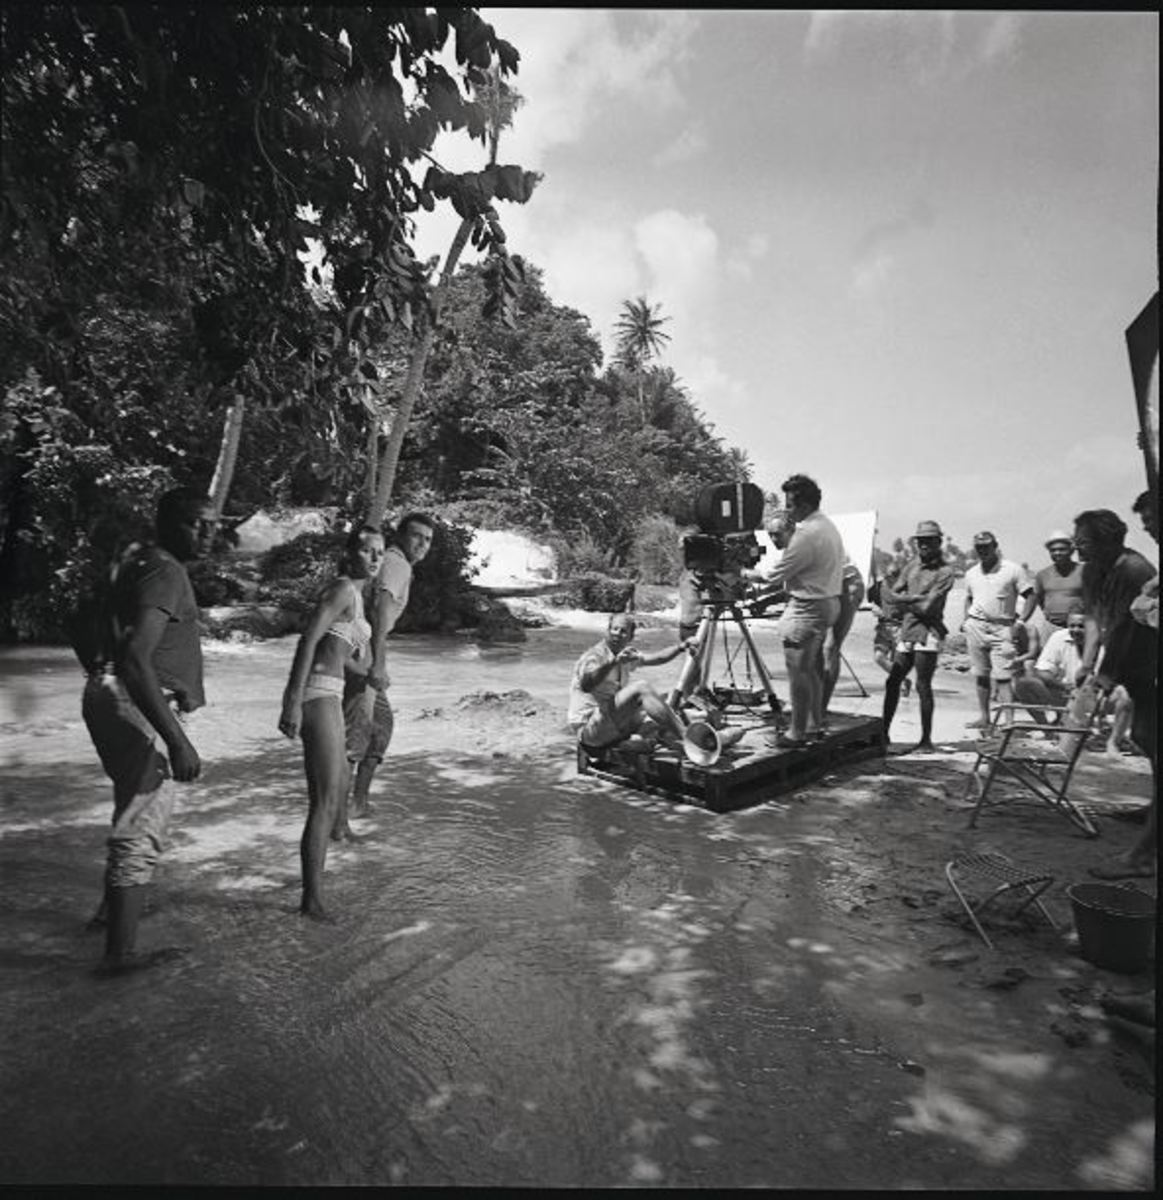 Terence Young positioned under the camera directing Sean Connery, Kitzmiller, Ursula Andress on location in Jamaica.